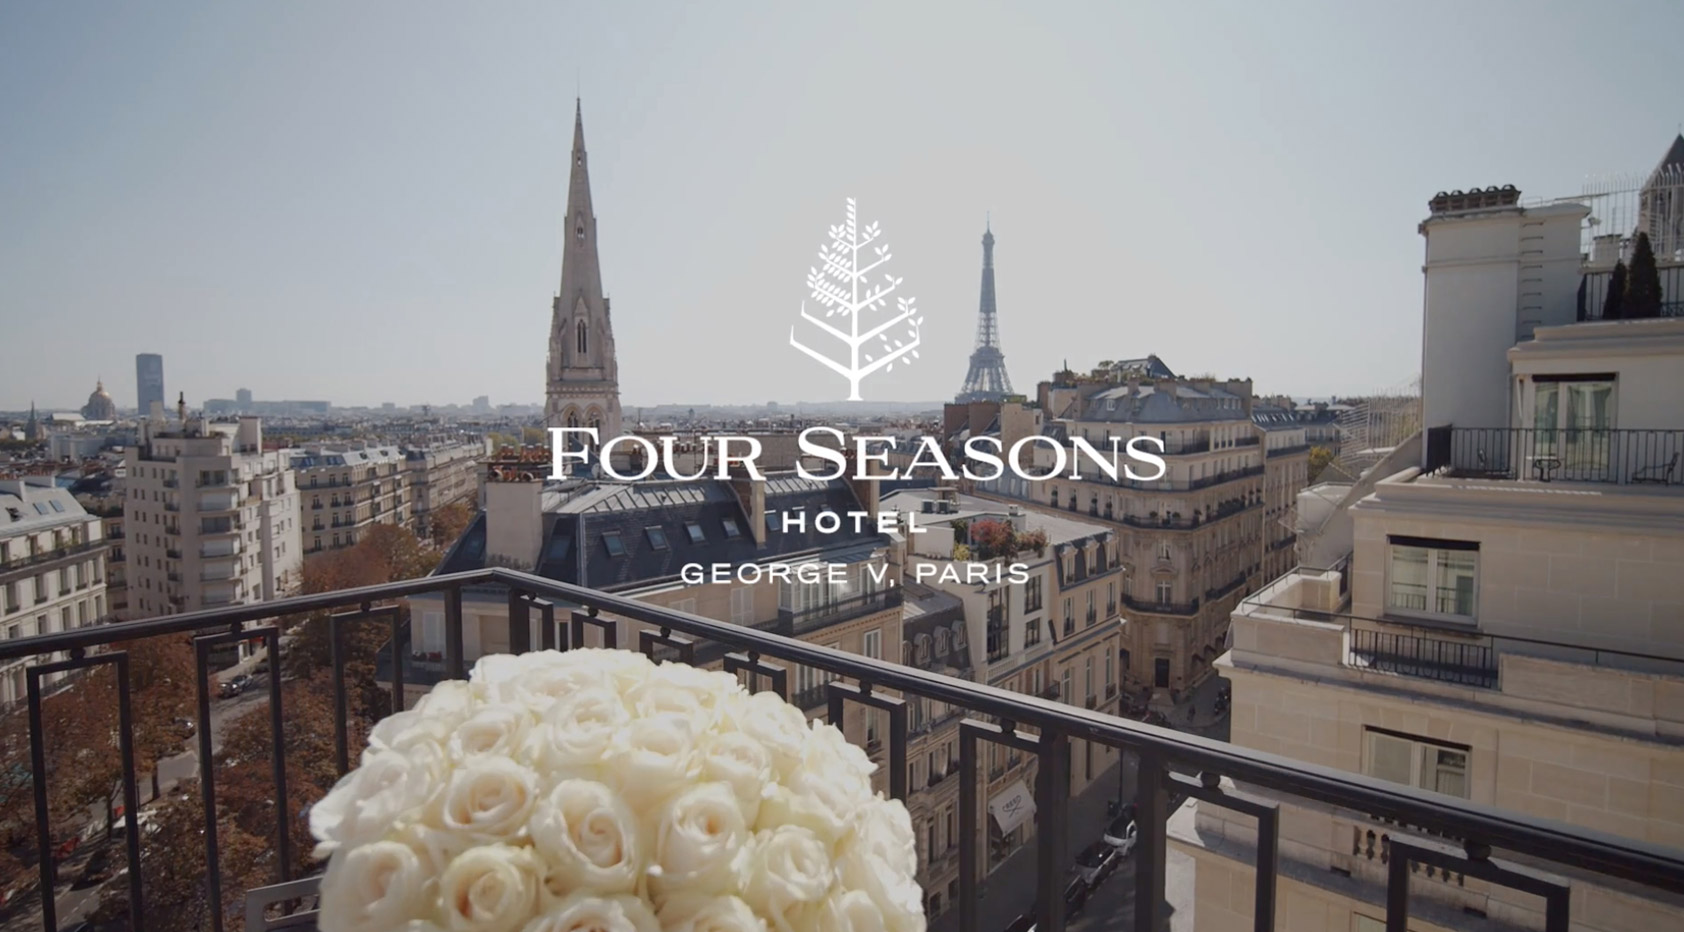 Four Seasons - Georges V